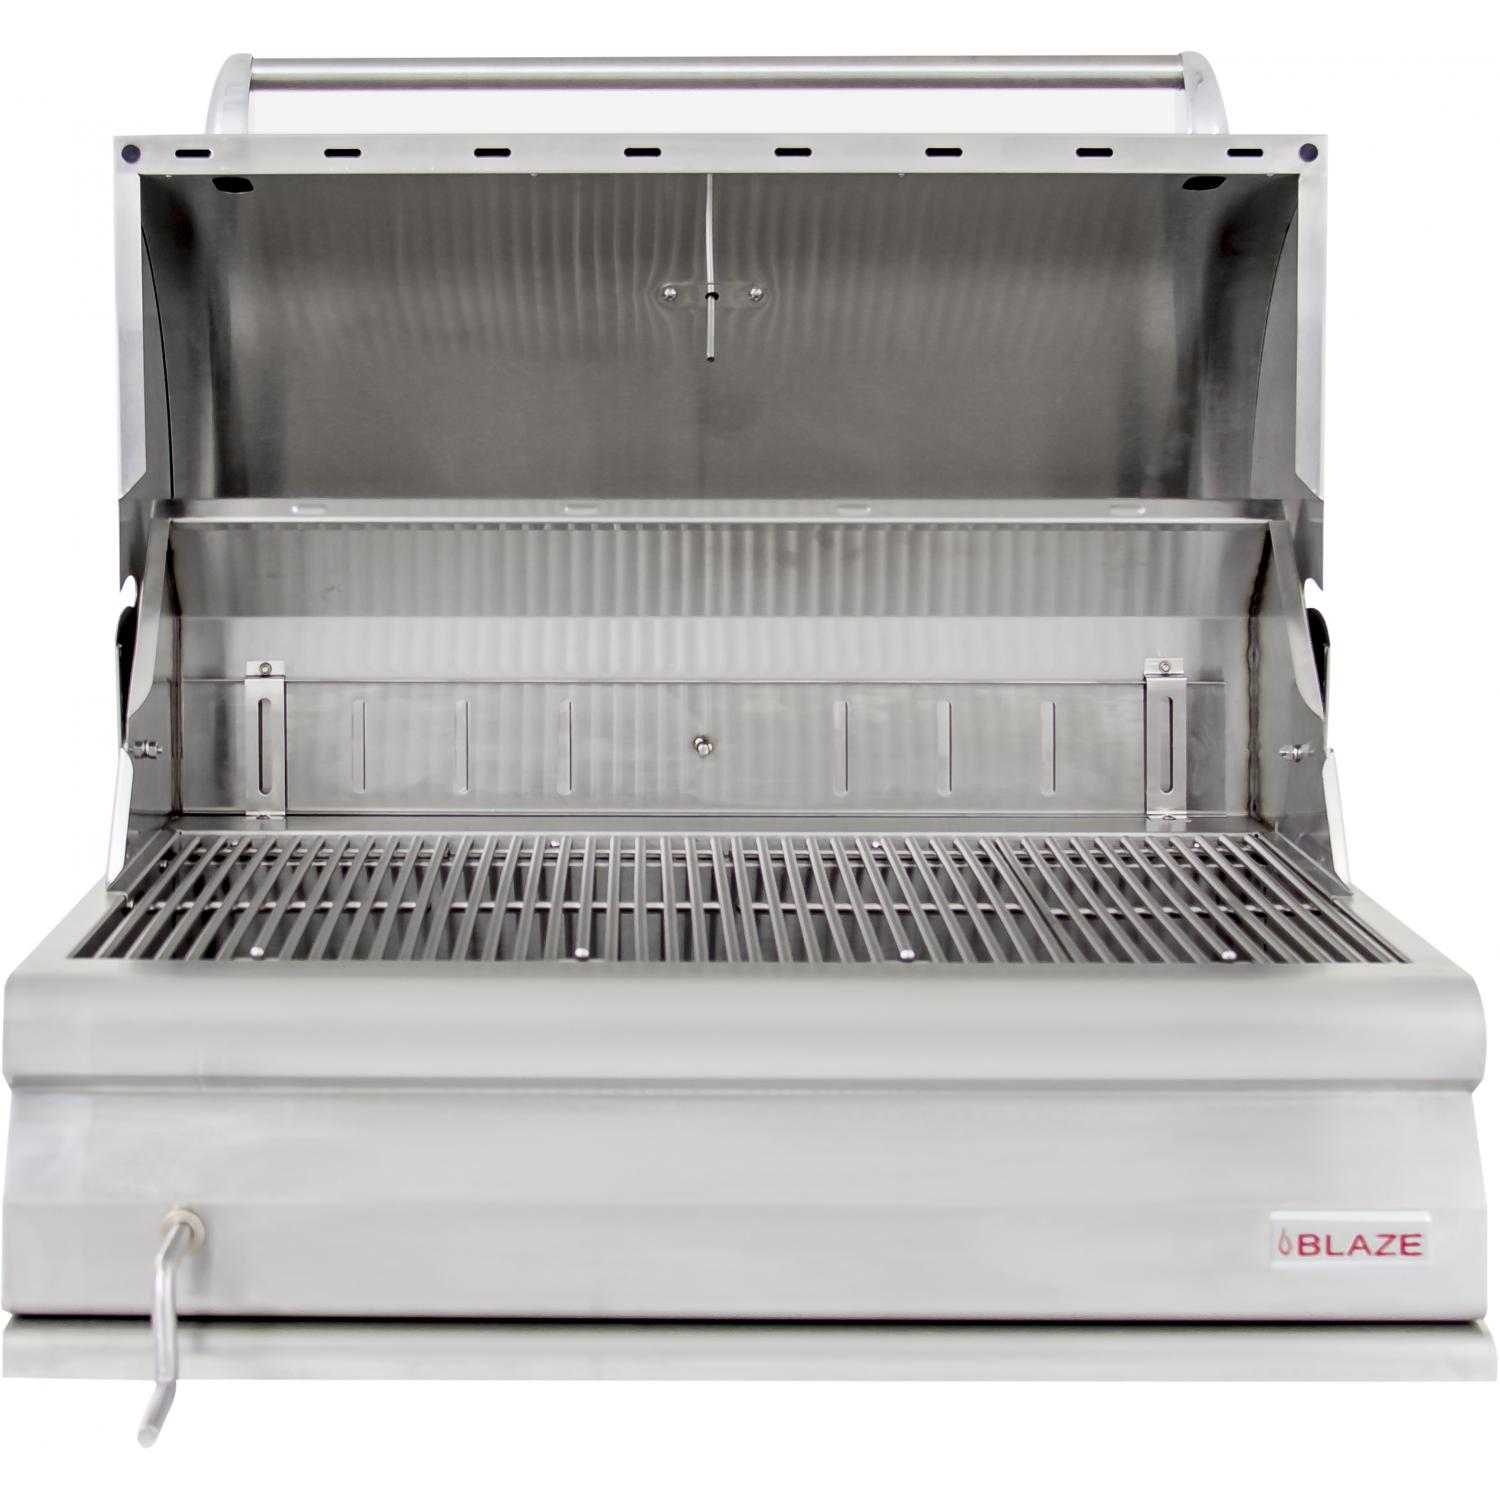 Blaze inch built in stainless steel charcoal grill with